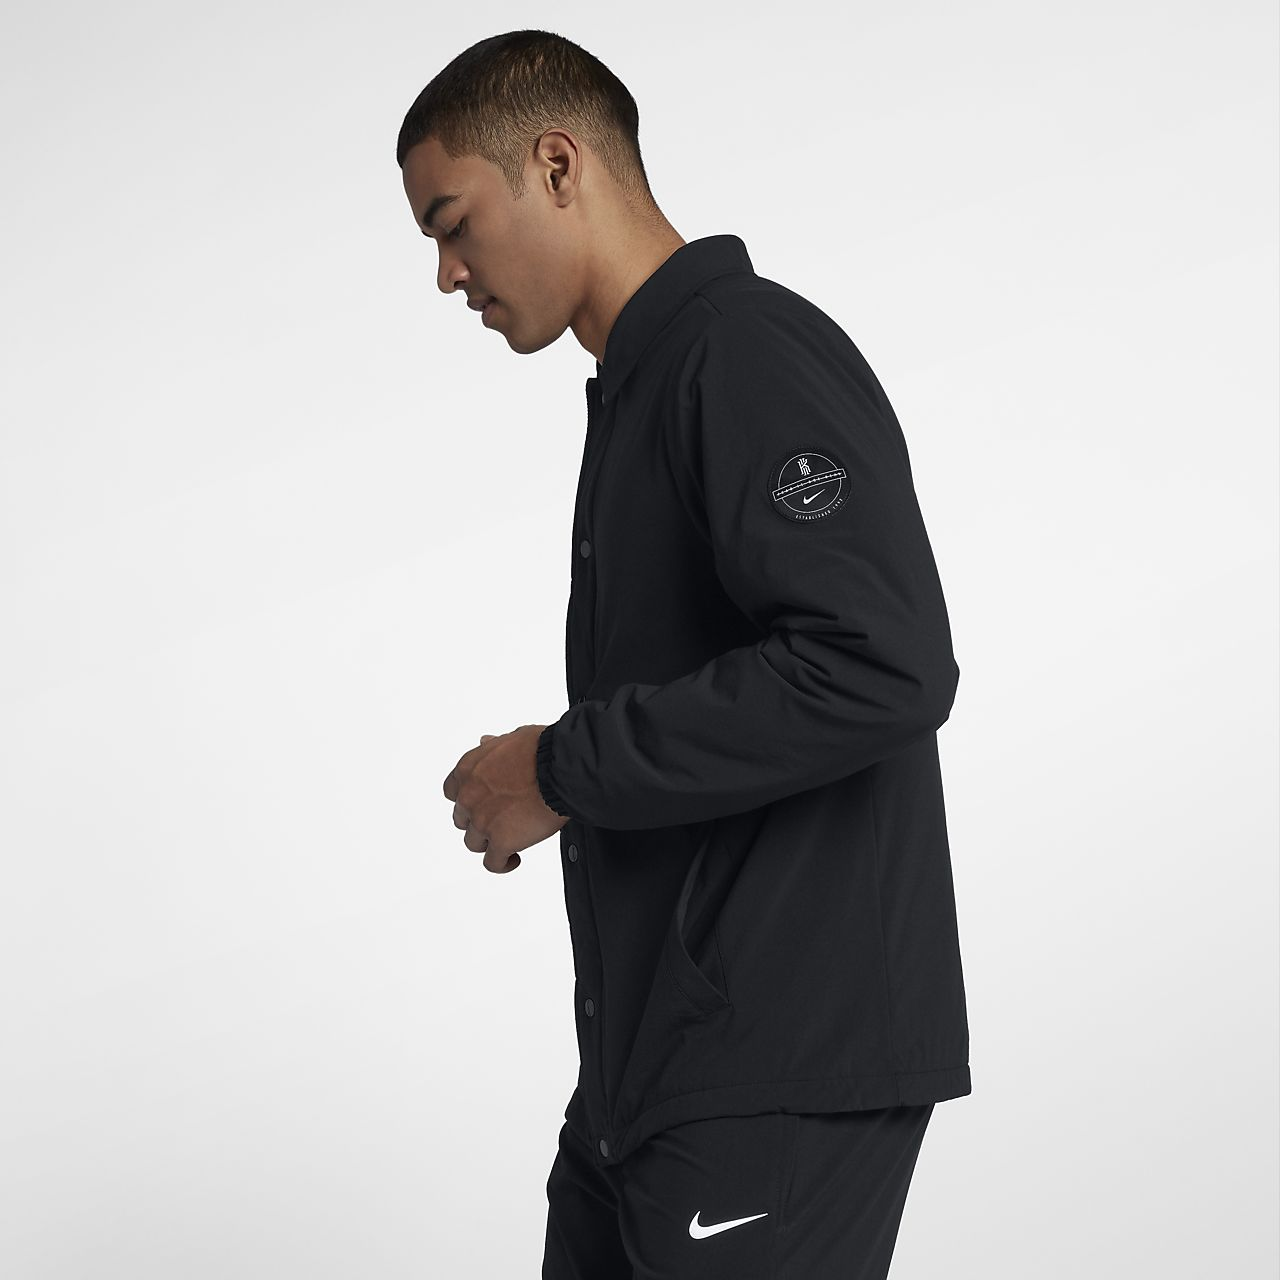 a8f0db9570a4 Low Resolution Nike Kyrie Men s Basketball Jacket Nike Kyrie Men s  Basketball Jacket